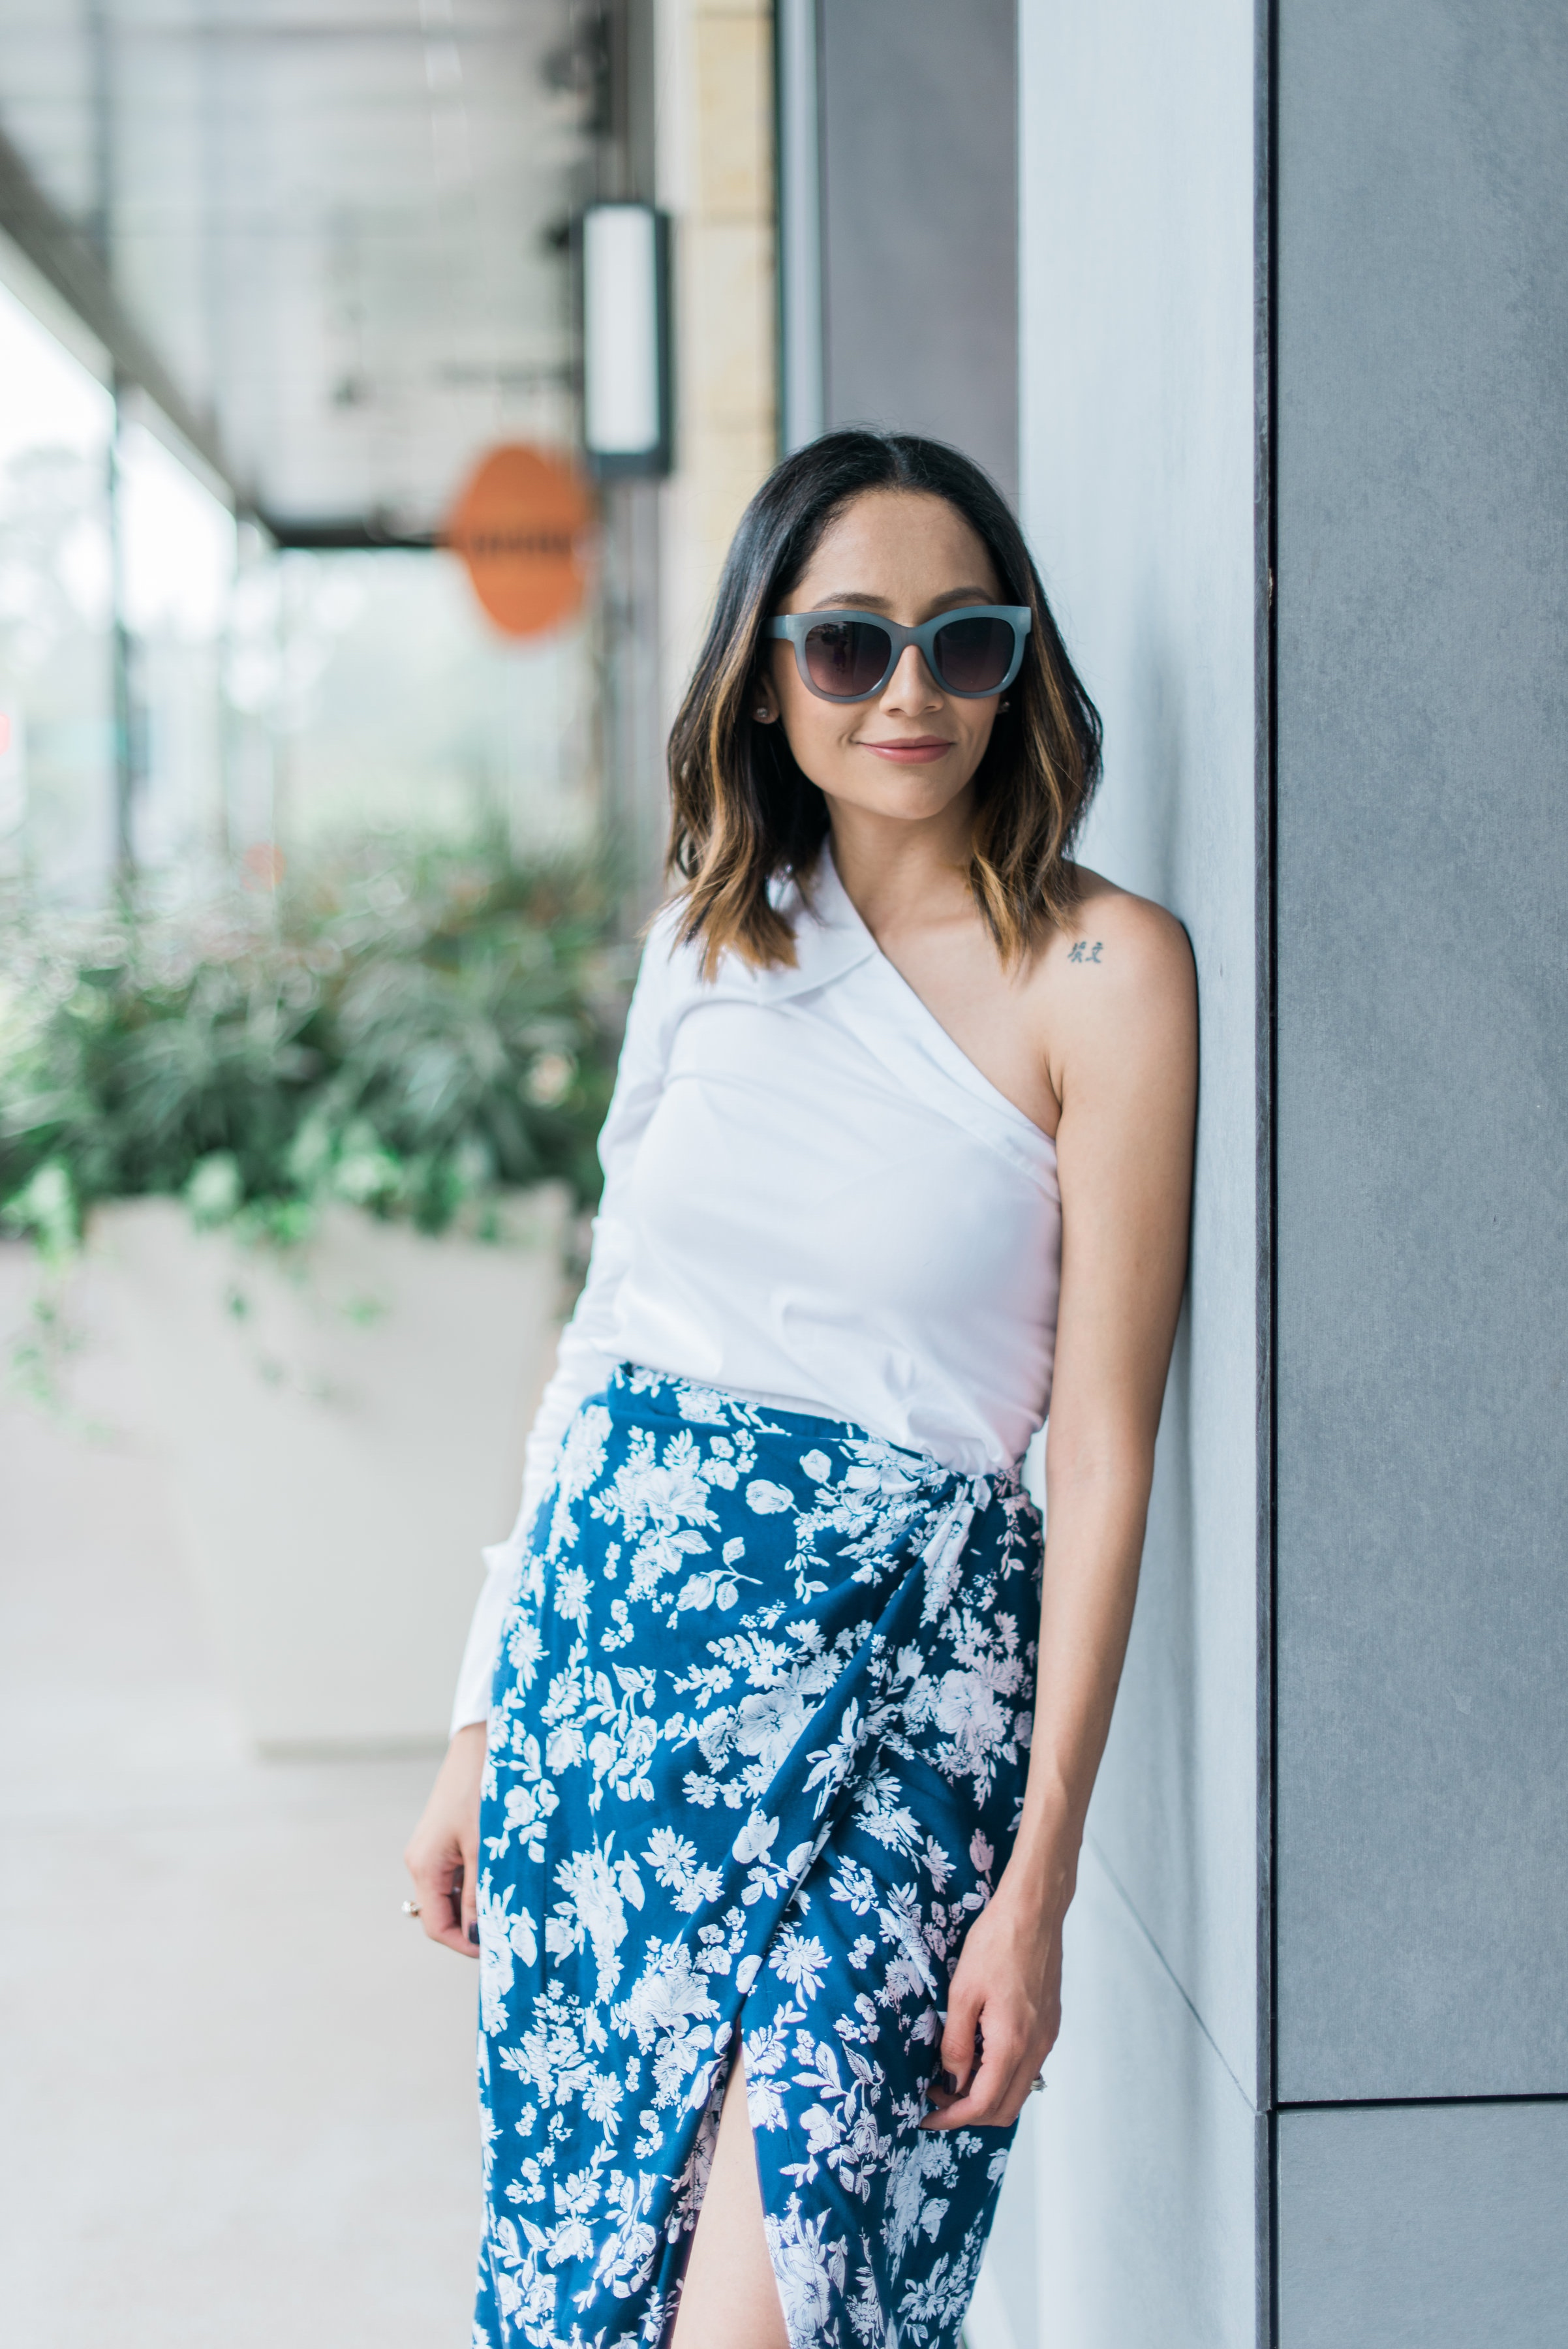 Lifestyle blogger Lilly Beltran from Daily Craving in a summer look wearing a floral wrap skirt and one shoulder top